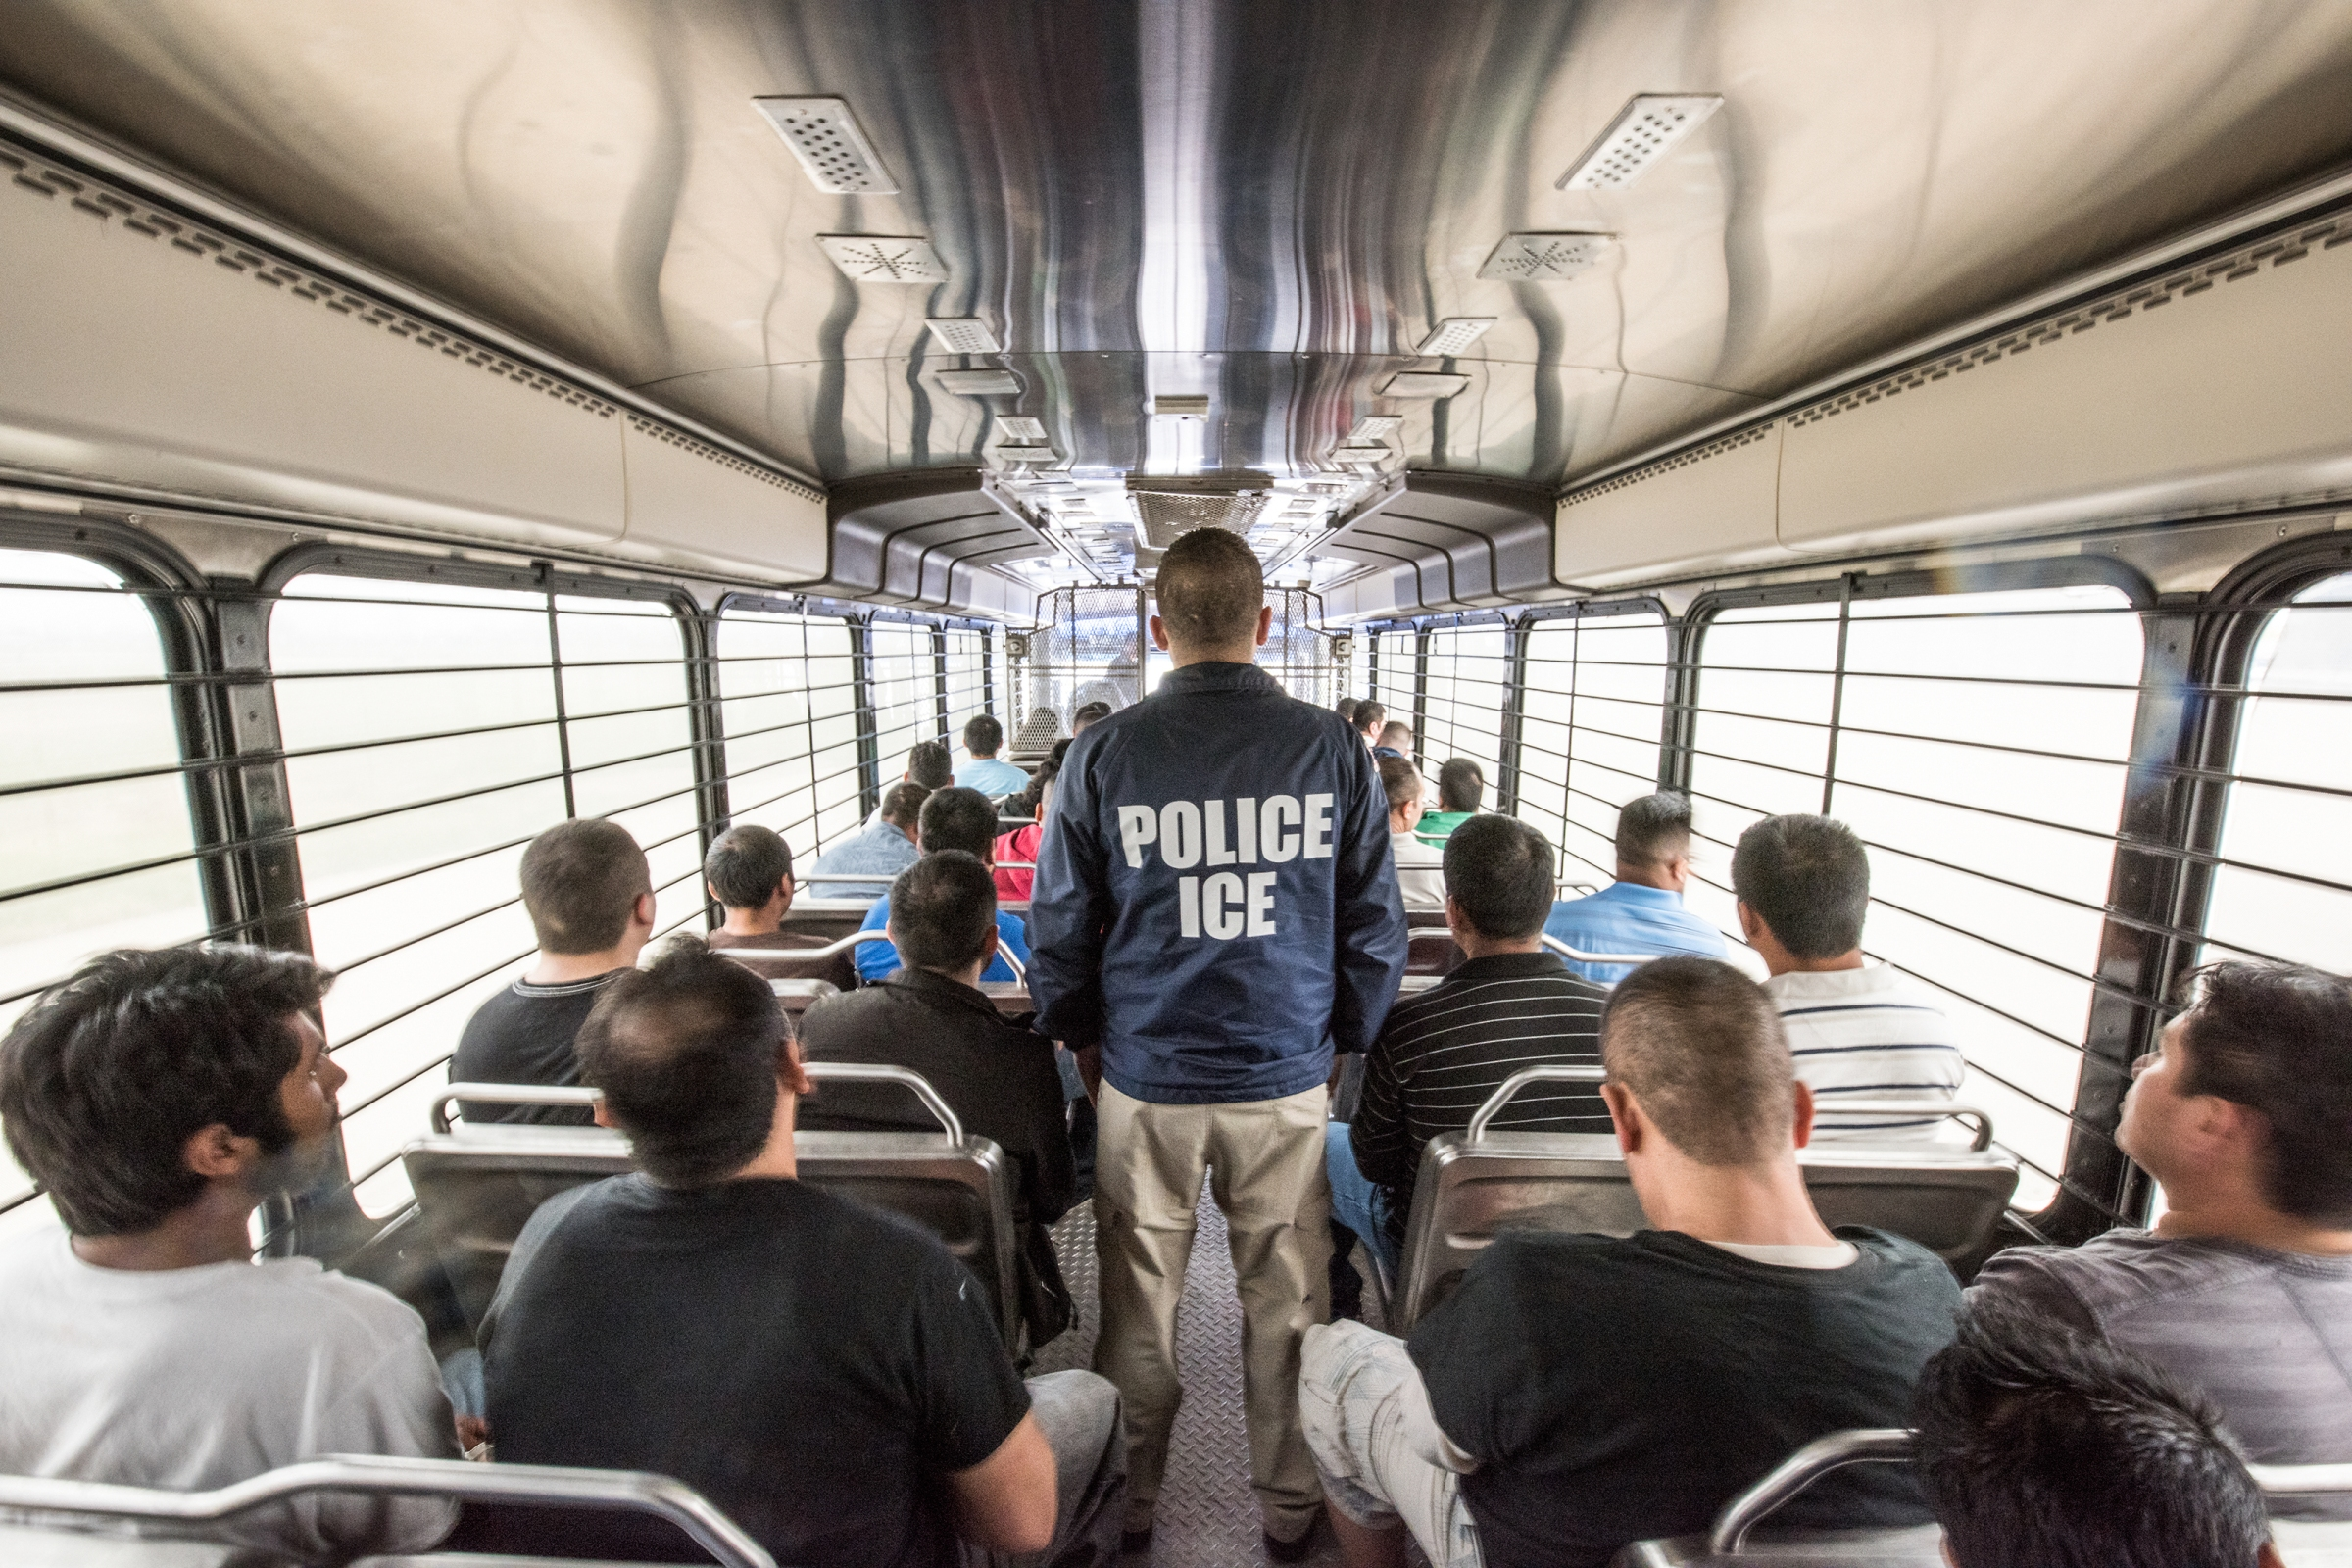 An ERO officer riding with people in custody to an ICE detention facility